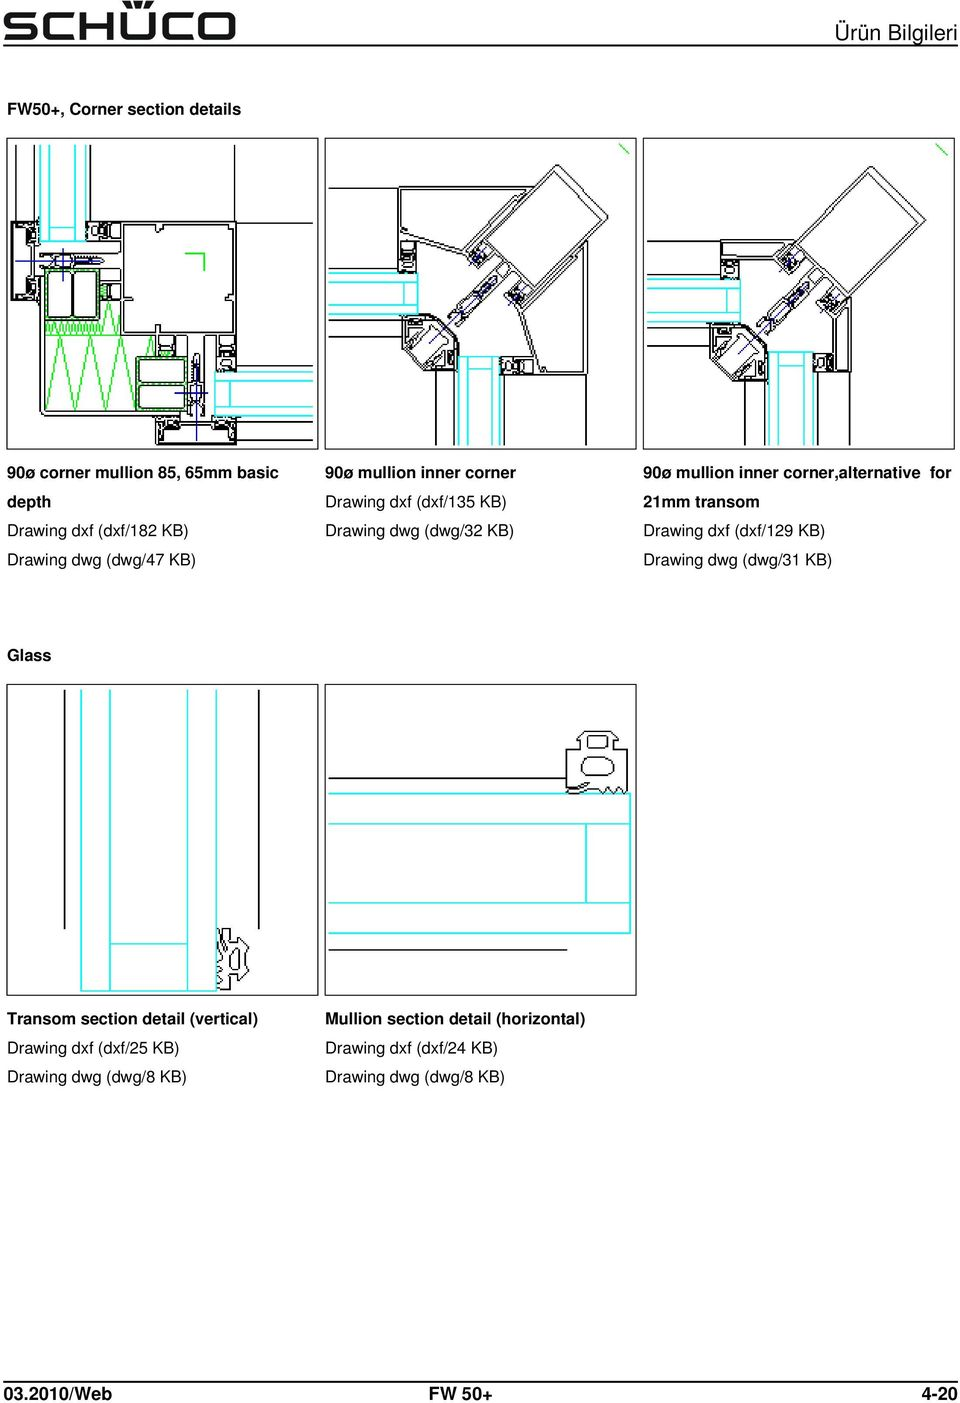 transom Drawing dxf (dxf/129 KB) Drawing dwg (dwg/31 KB) Glass Transom section detail (vertical) Drawing dxf (dxf/25 KB)